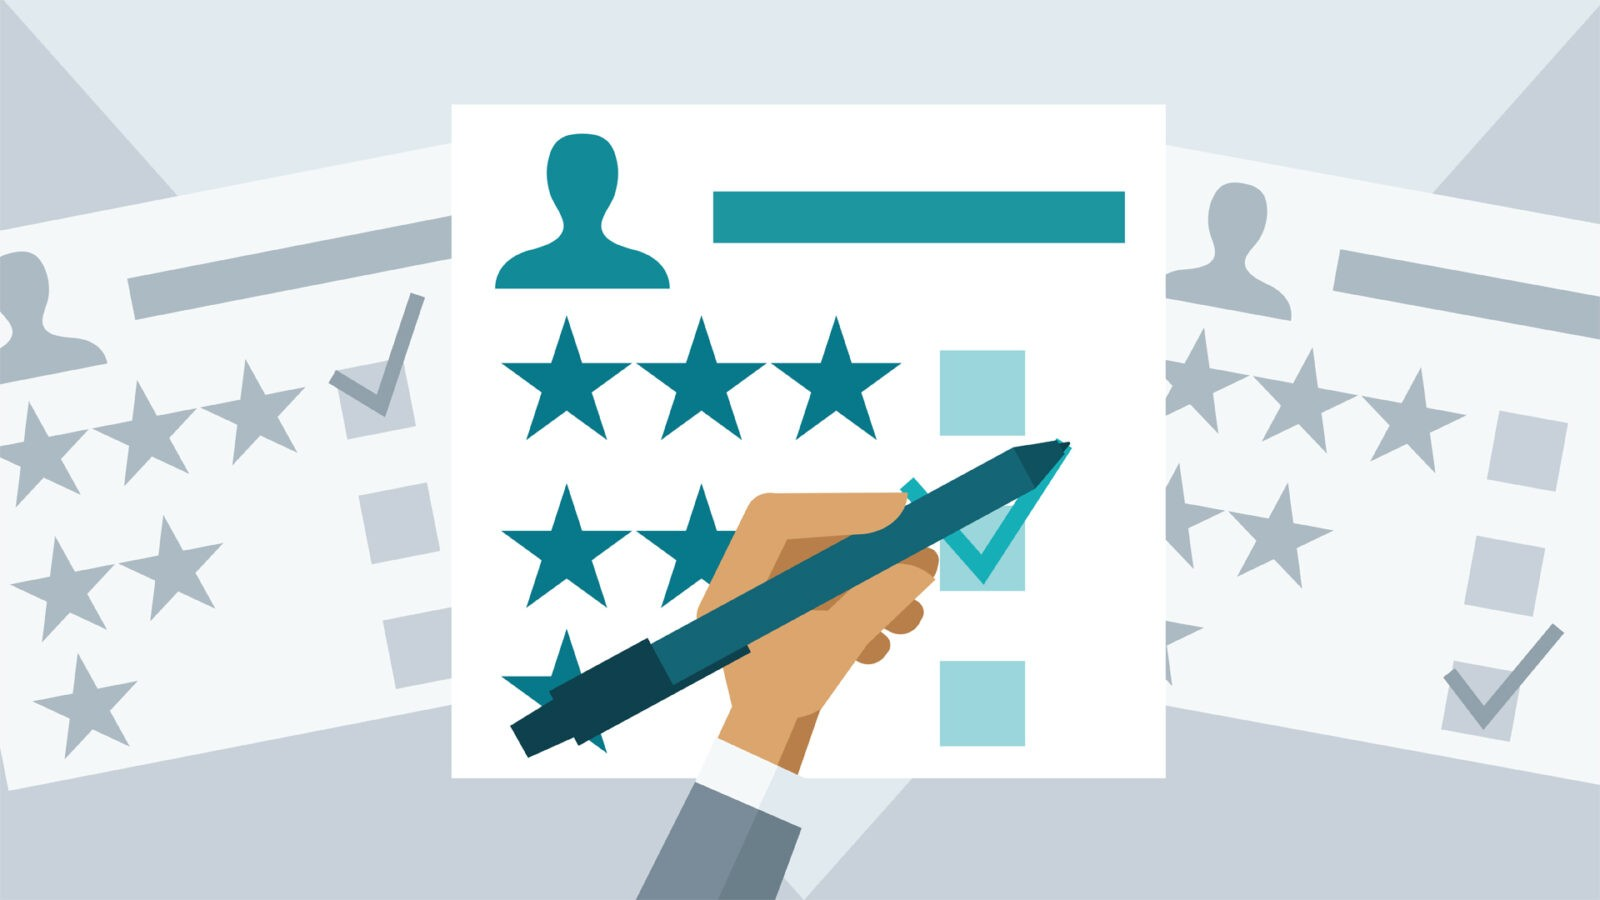 Why Should HR Care About UX?